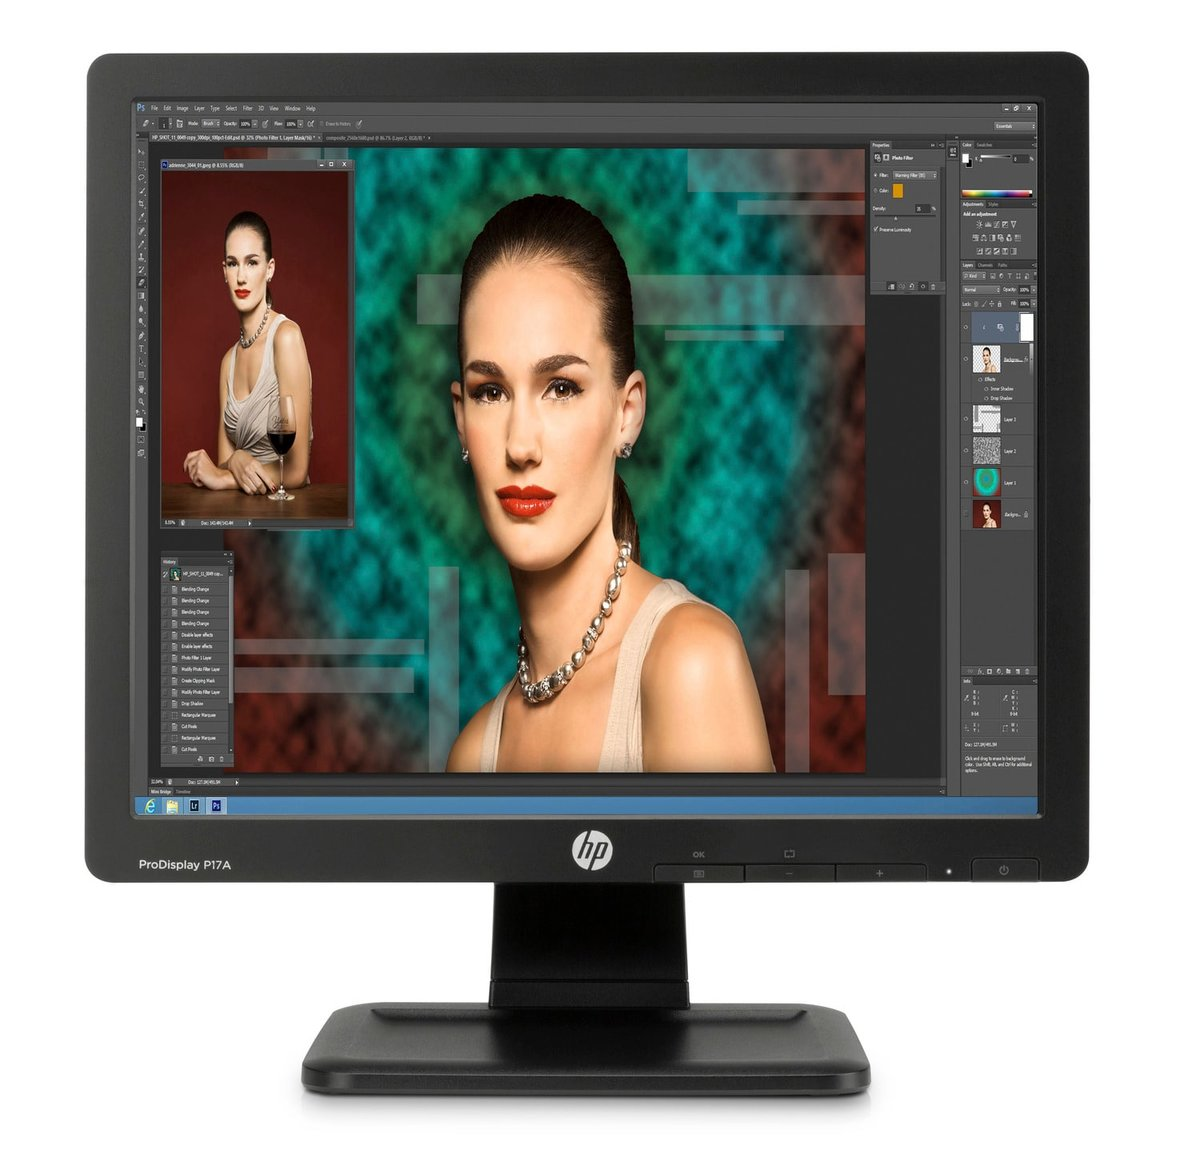 HP ProDisplay P17A 17-inch 5:4 LED Backlit Monitor,3-years  Square